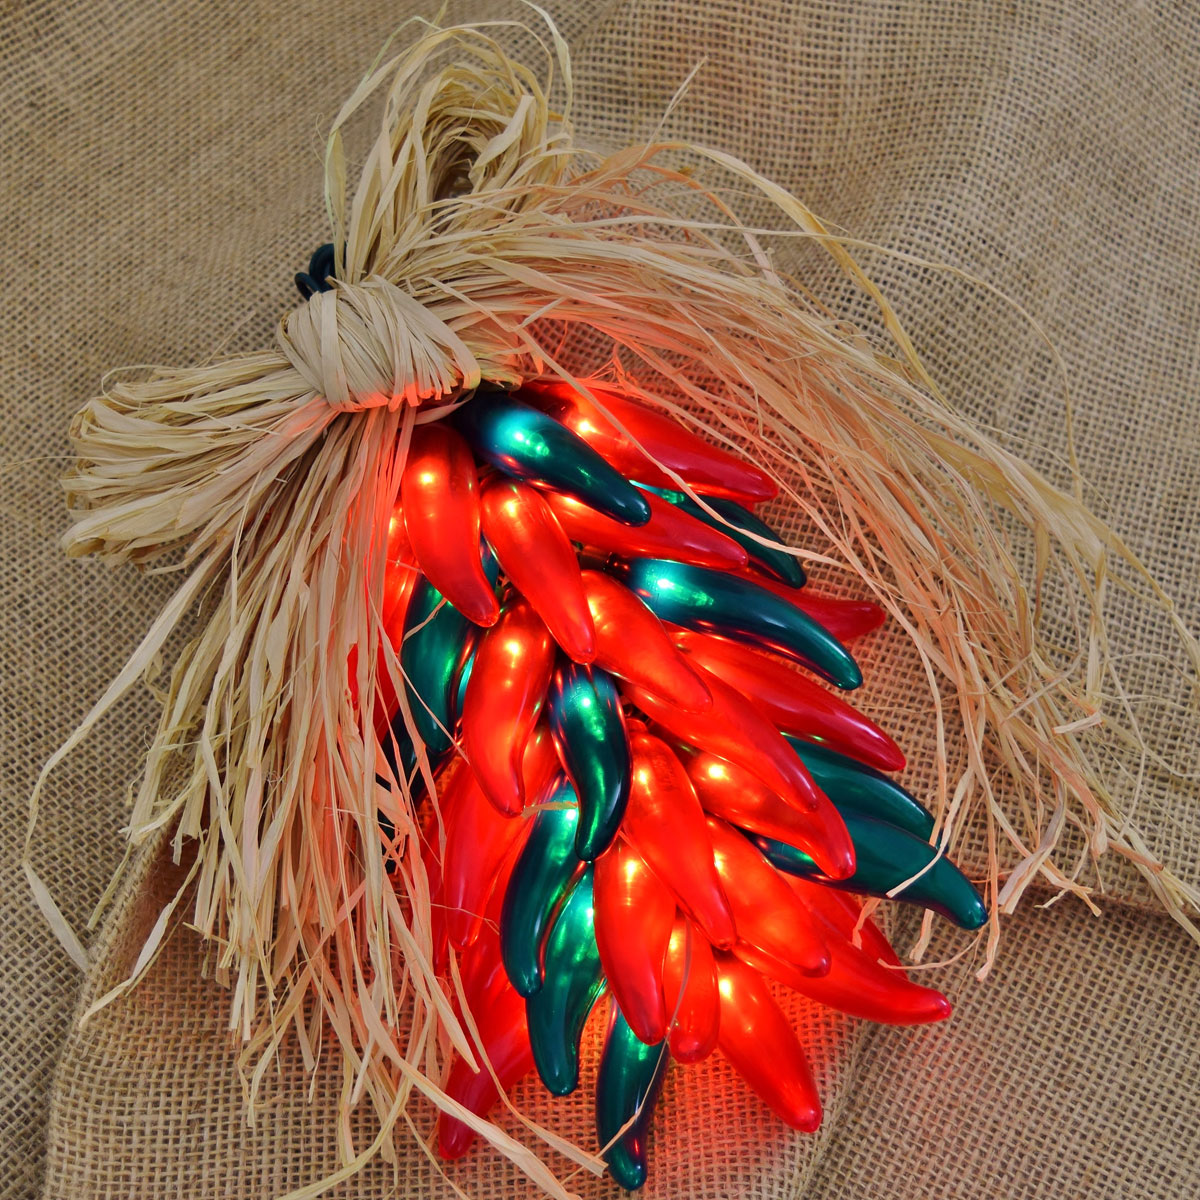 Red Green Chili Pepper Ristra String Lights 35 Lights